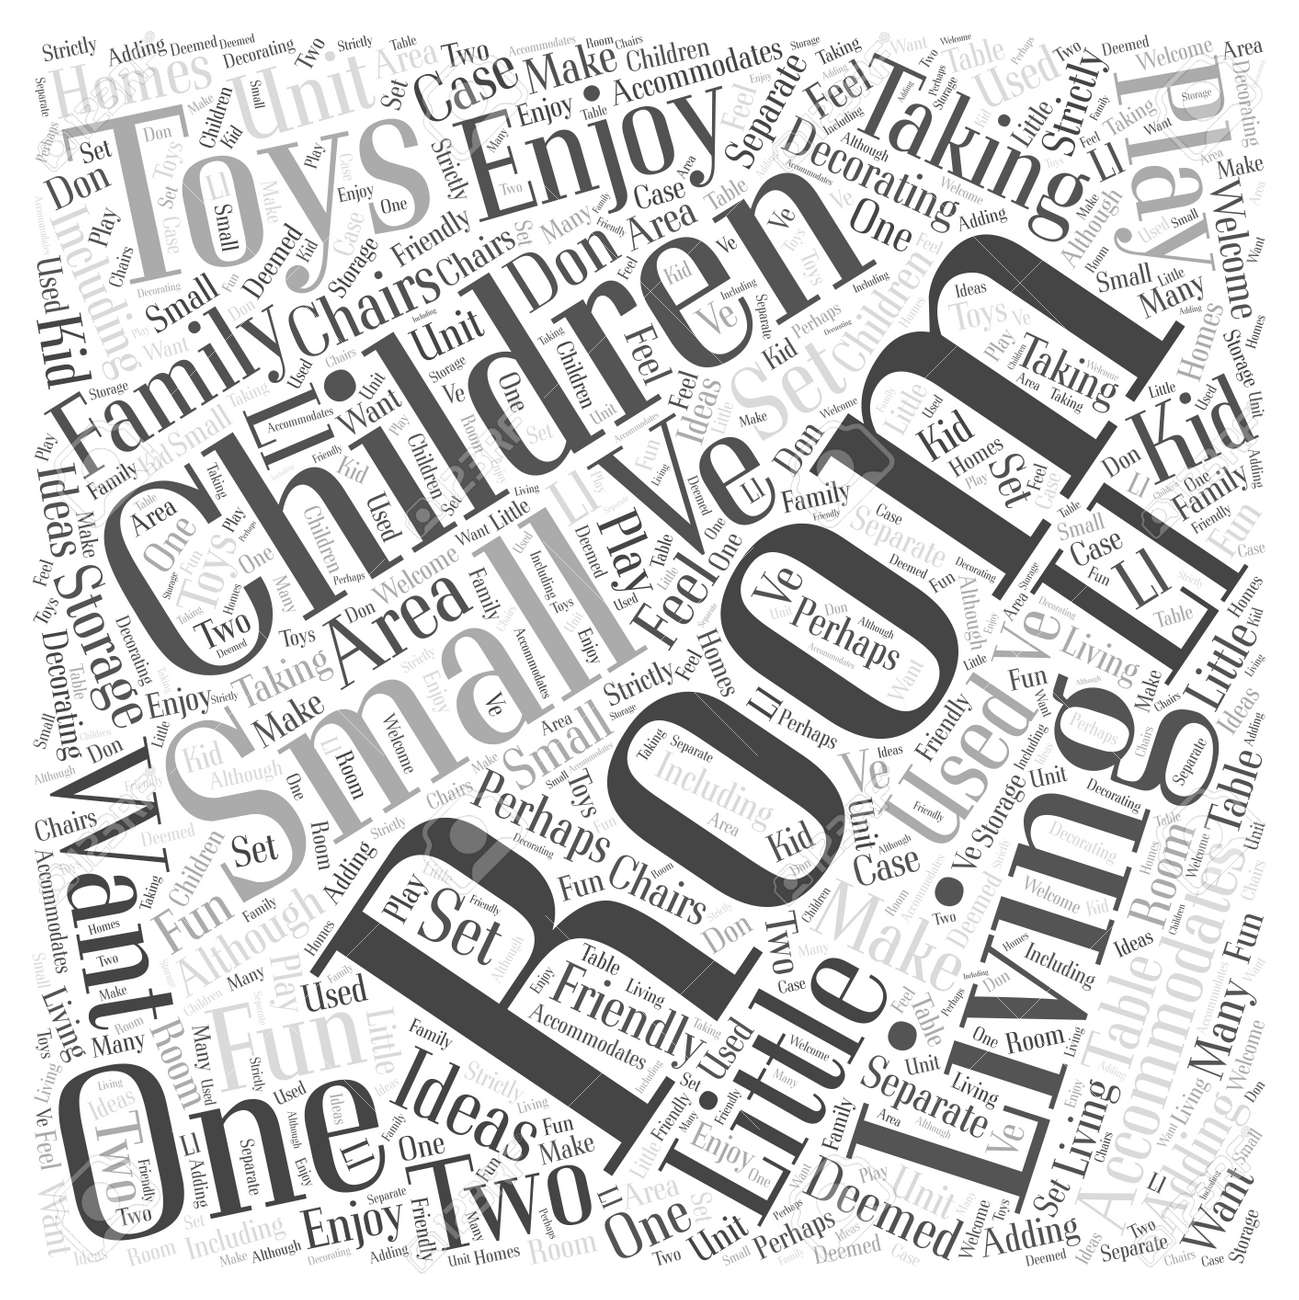 decorating ideas for a living room Word Cloud Concept